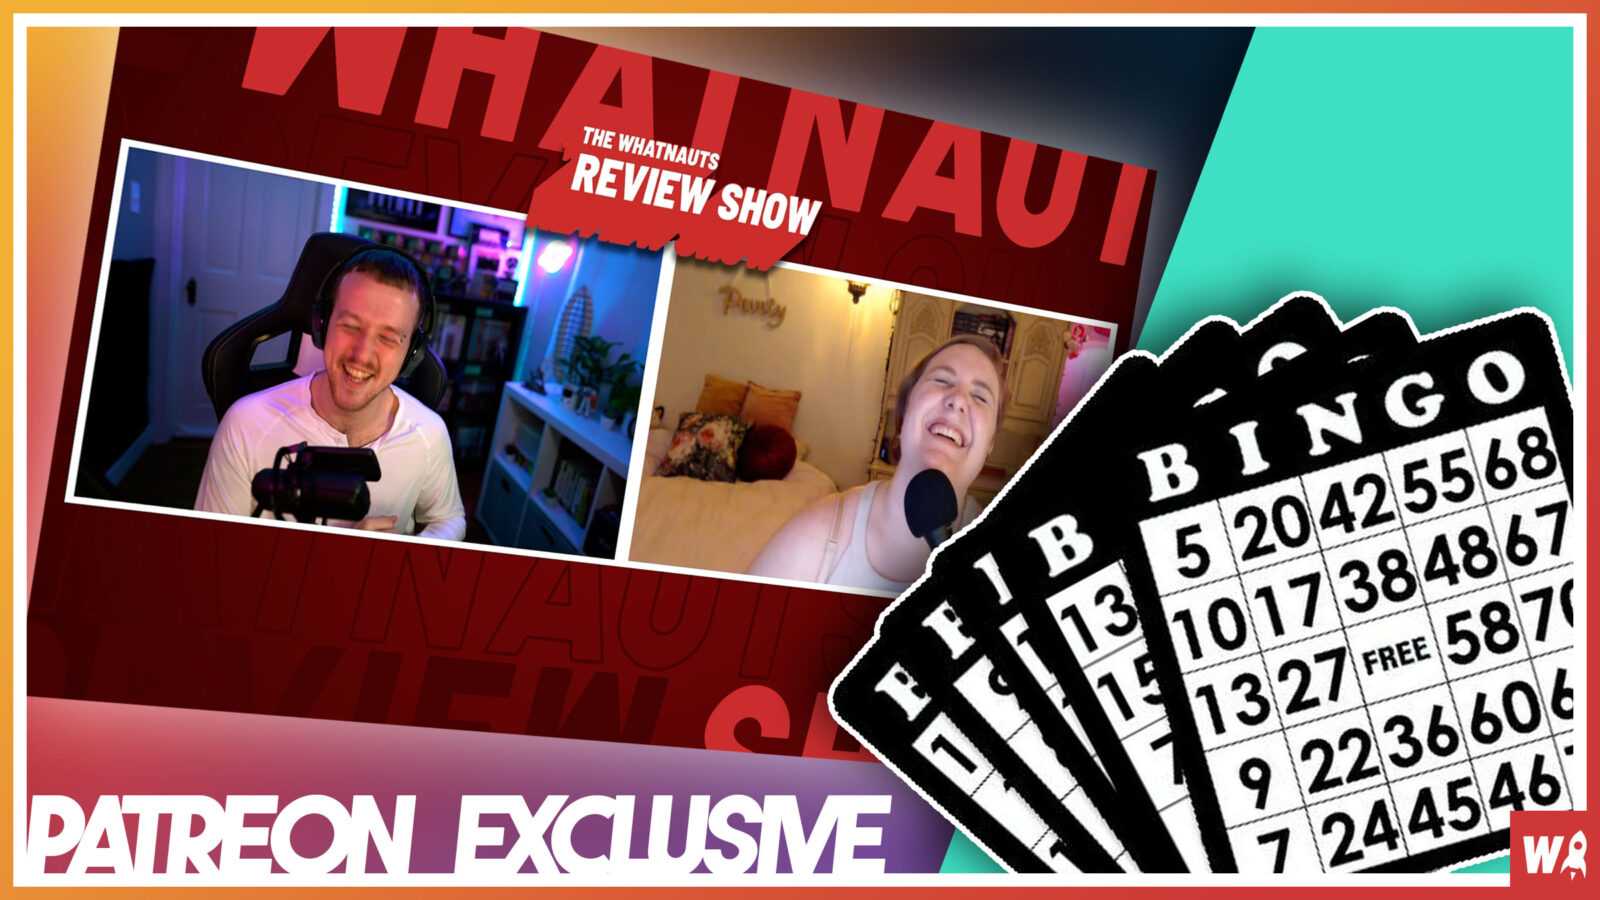 Making Bingo cards for The Review Show - Patreon Exclusive 2